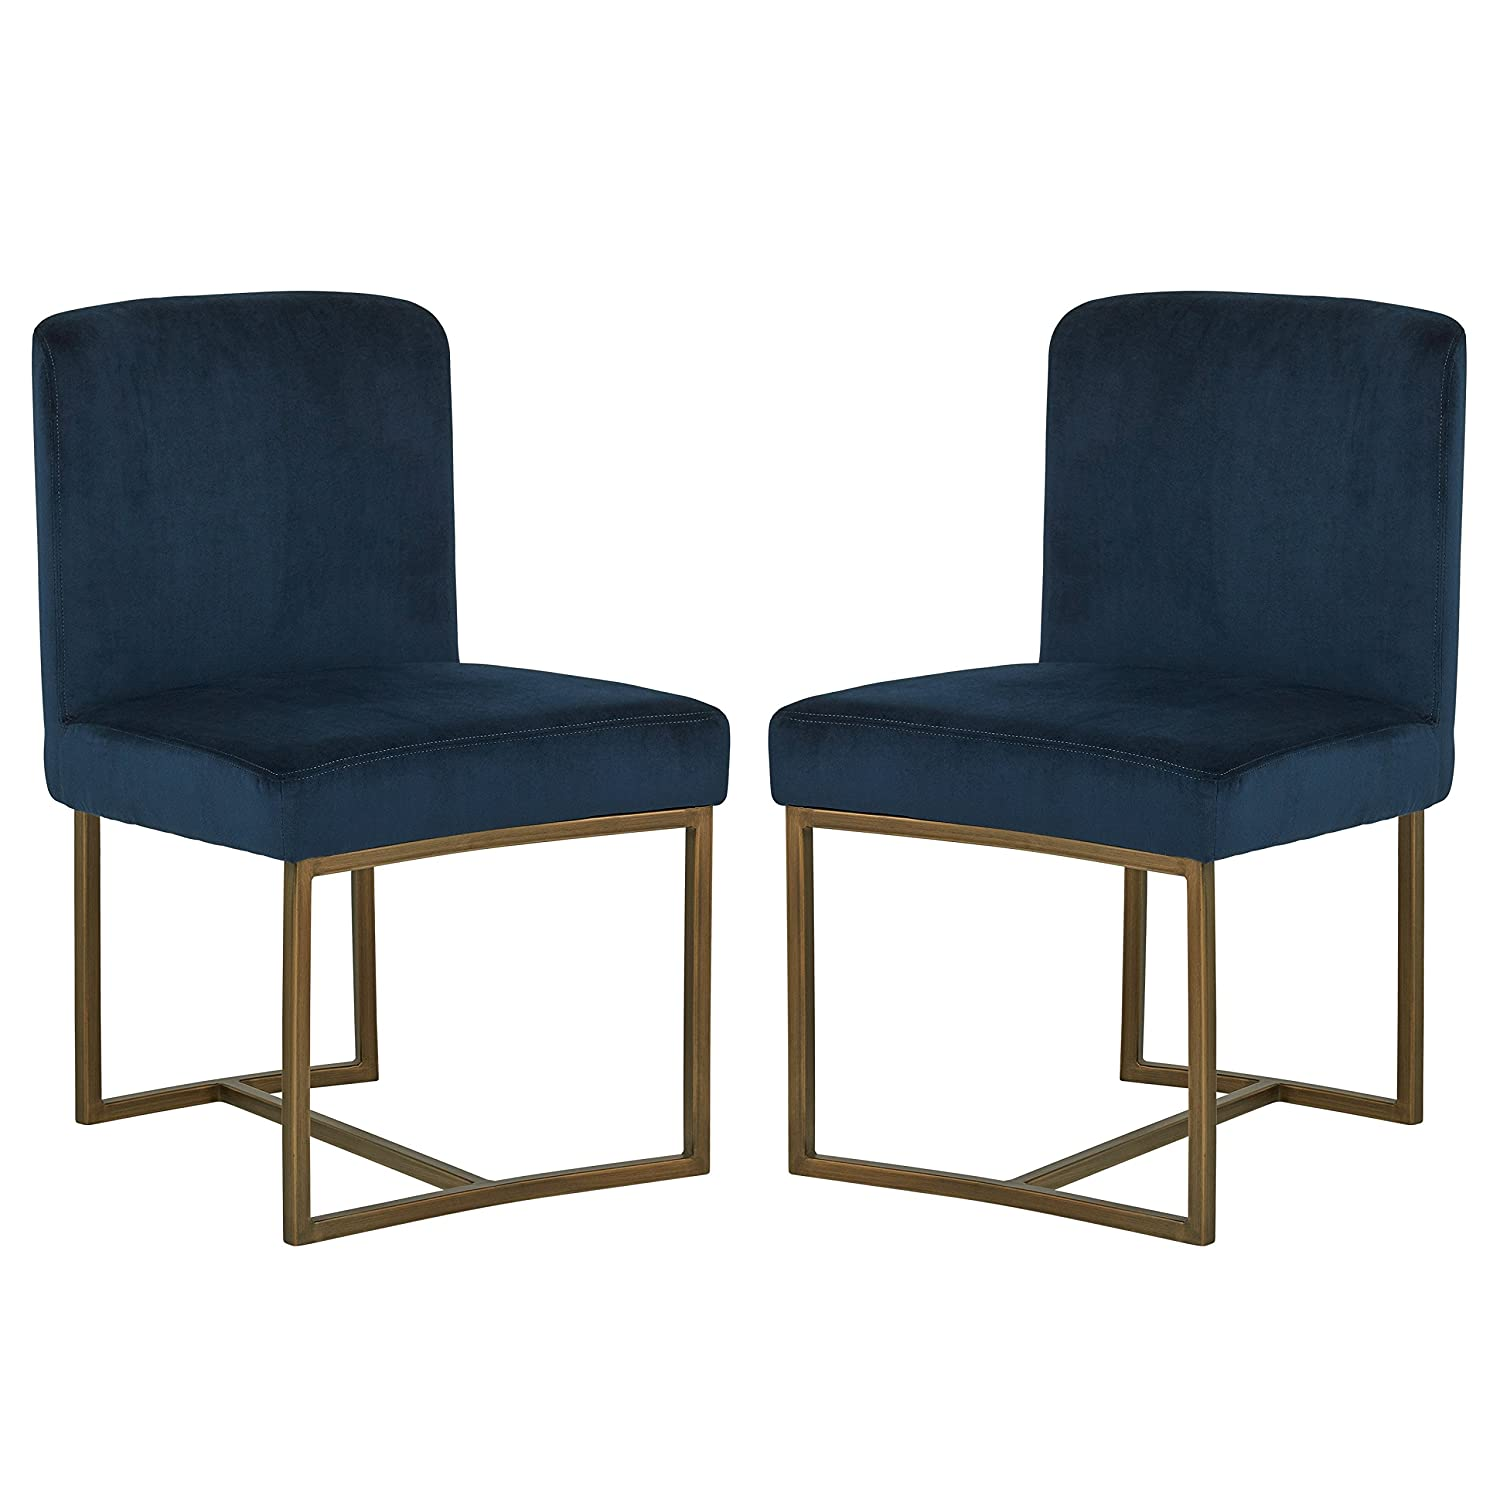 Rivet Eastern Modern Dining Room Kitchen Chairs, Velvet, 32 Inch Height, Set of 2, Blue, Bronze Metal